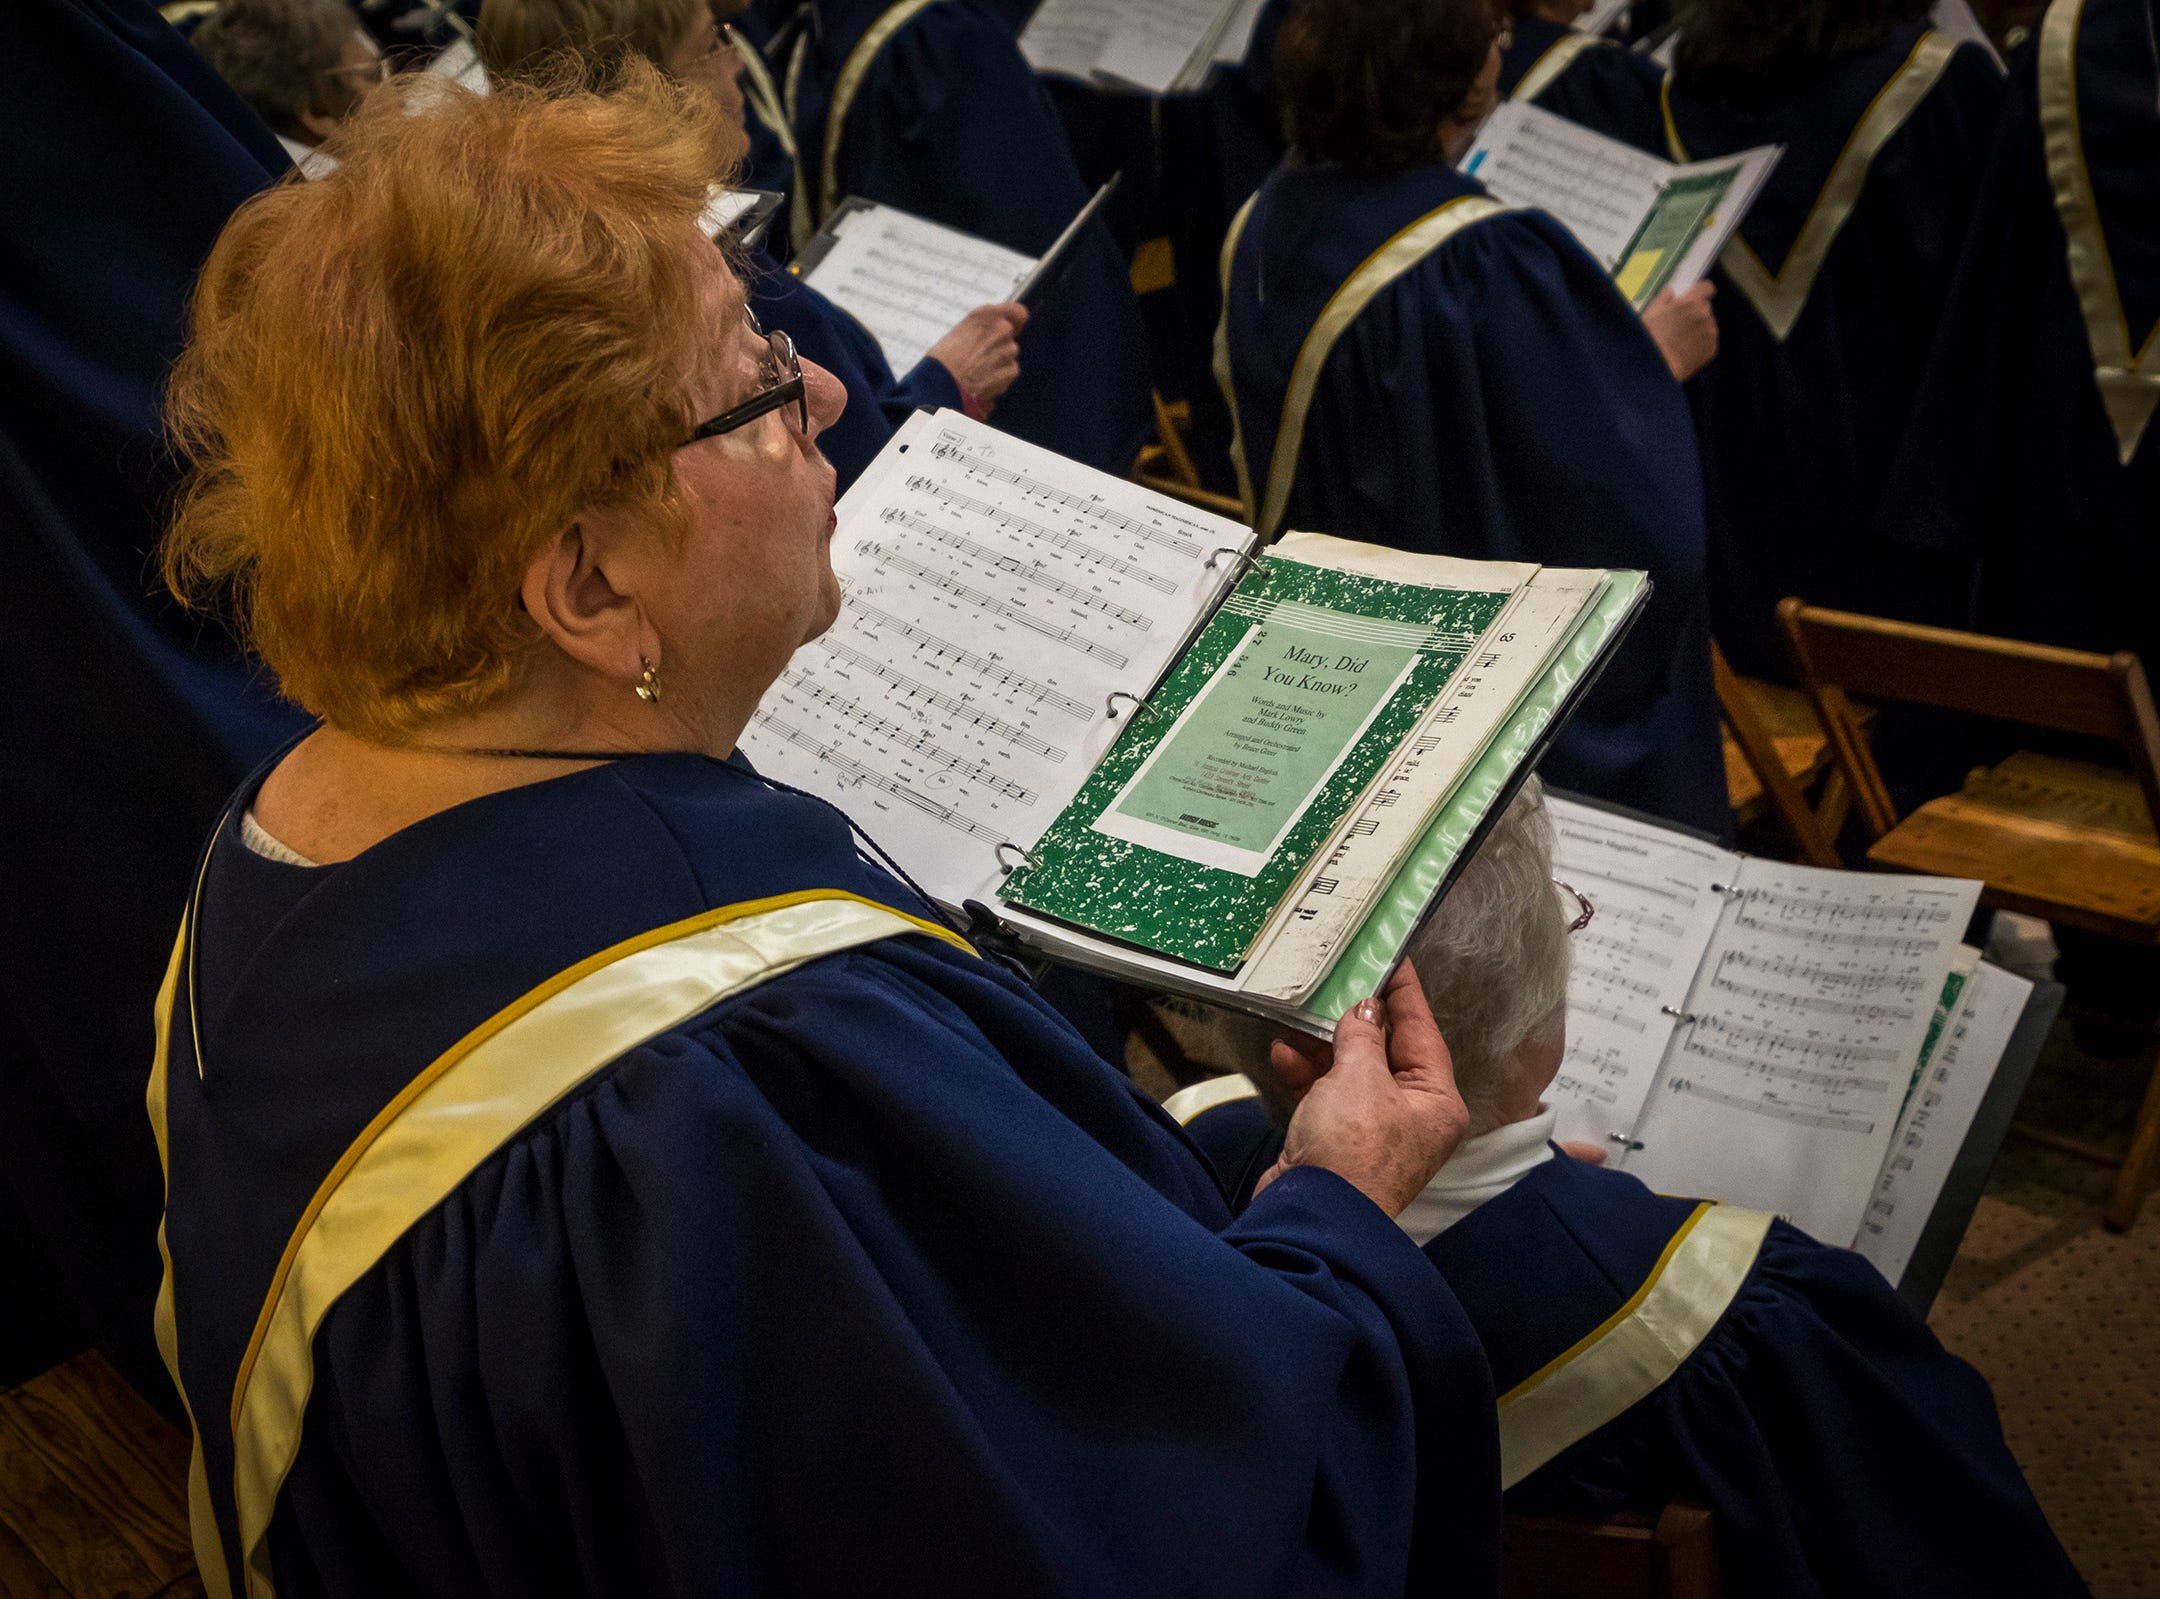 A choirmember holds a songbook Friday, Dec. 7, 2018, during the annual Advent concert at St. Joseph's Catholic Church in Port Huron.